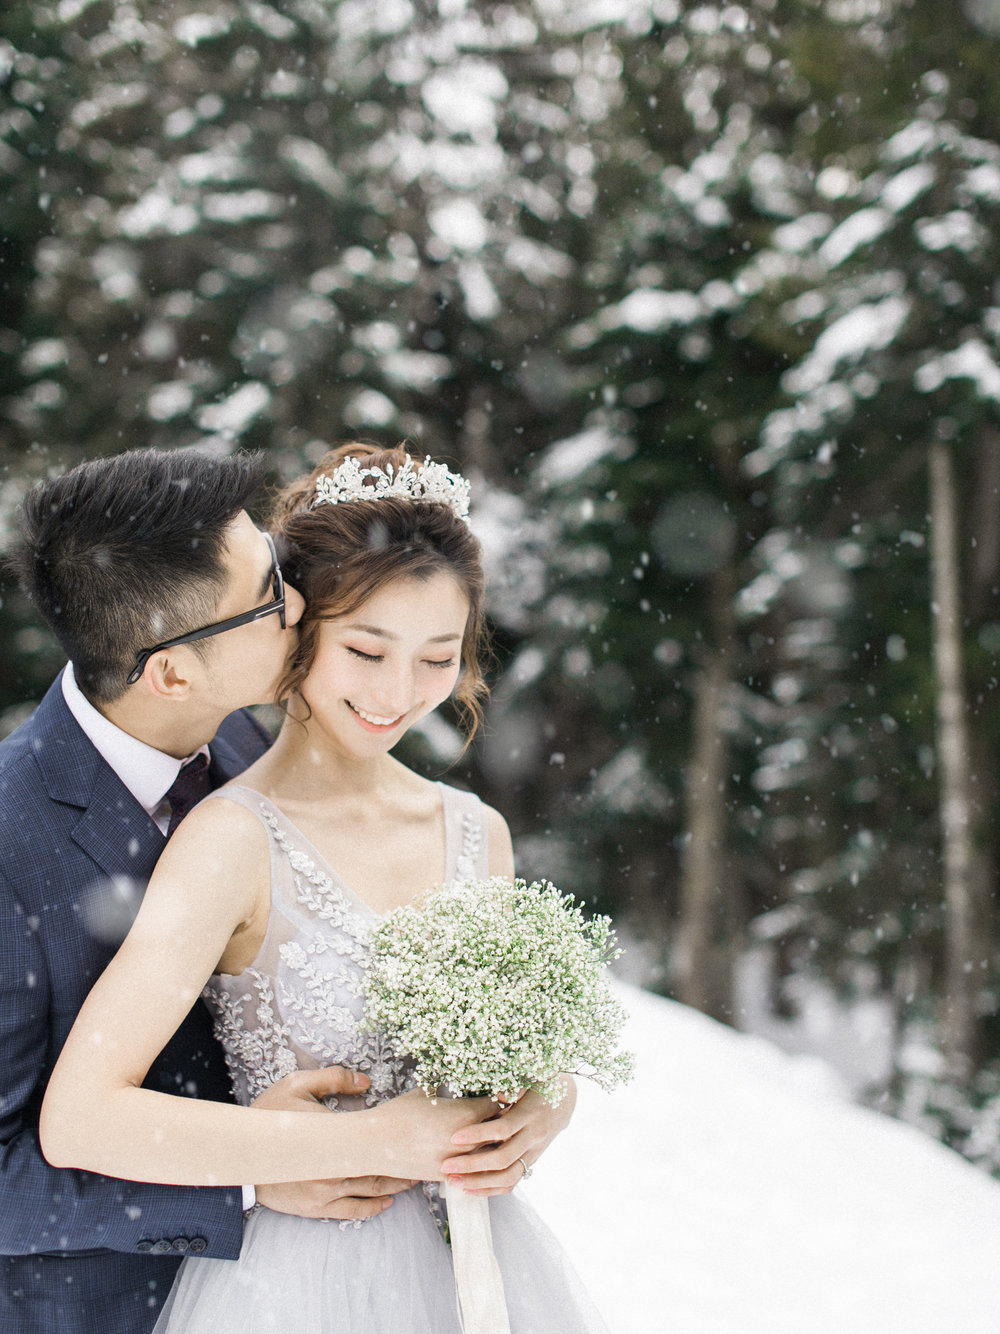 20170225LeslyJerryPreWedding-8 copy.jpg